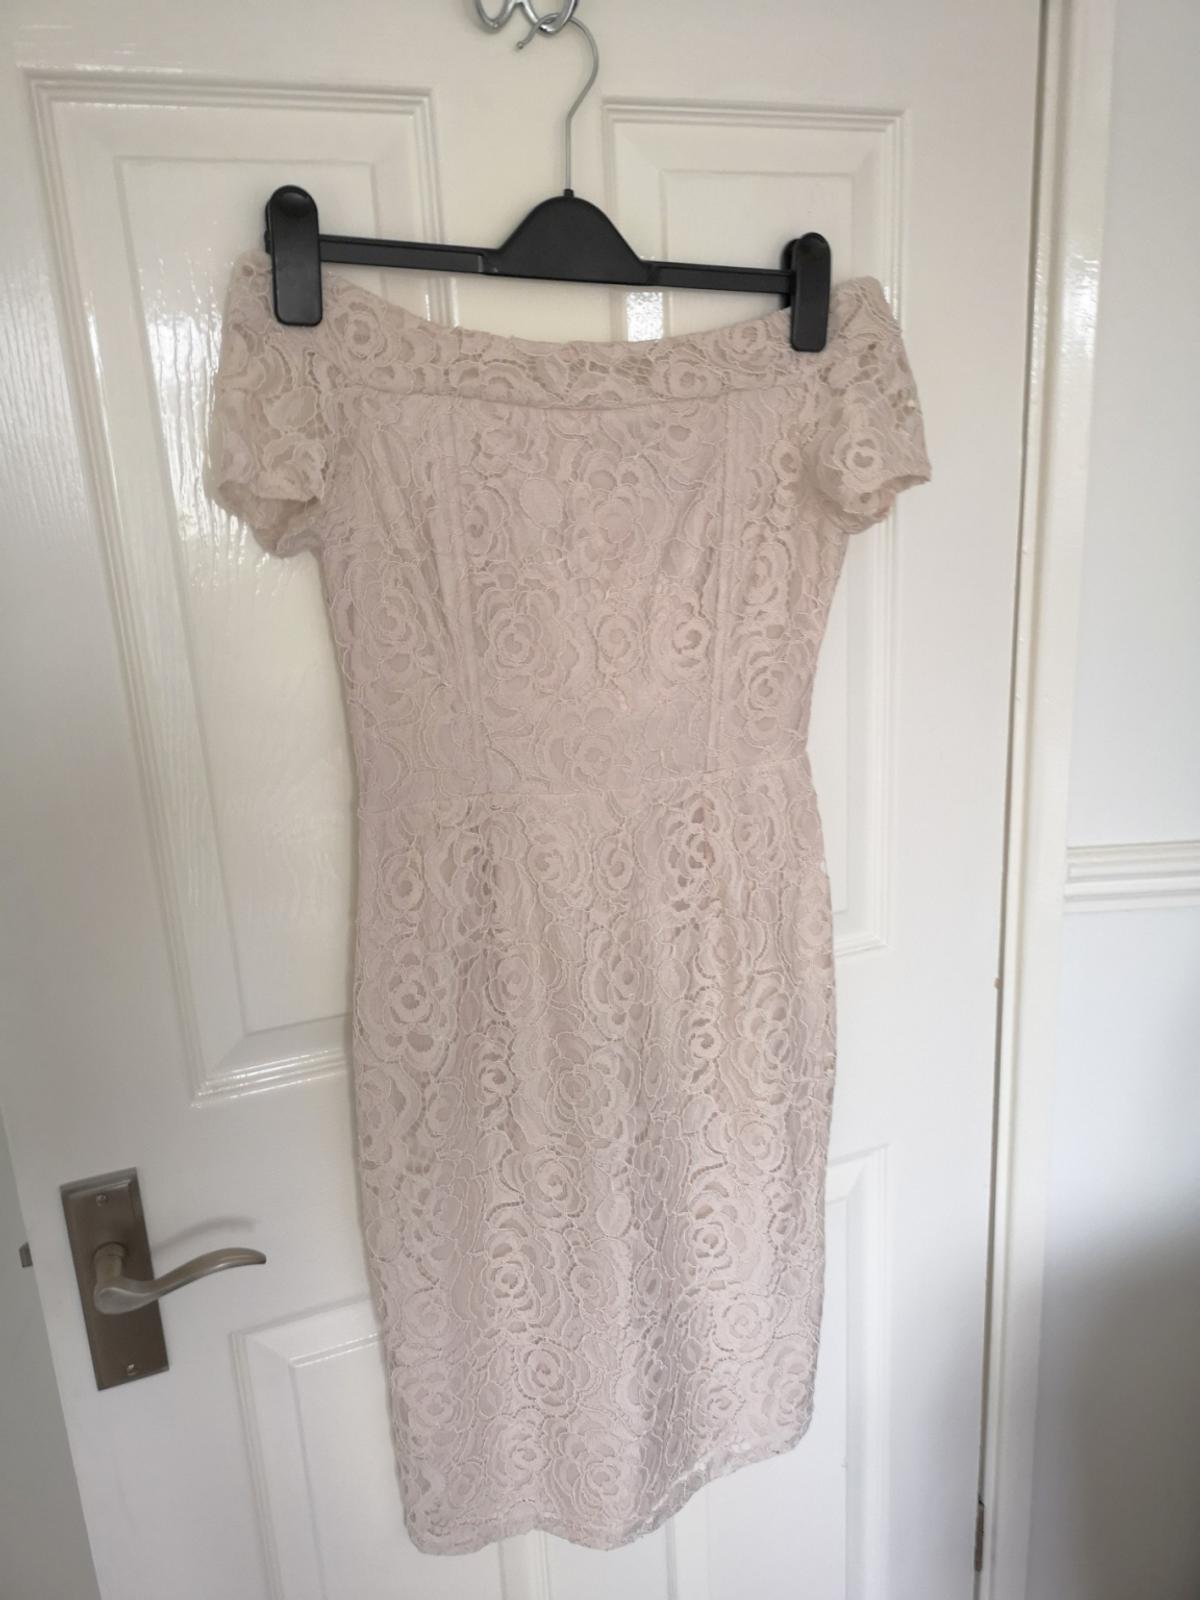 I have 2 dresses for sale. I bought extra sizings for my bridesmaids. Never been worn, still tagged and in protective bags. Bought for £55 each would like £30 please. Sizes 10 and 12